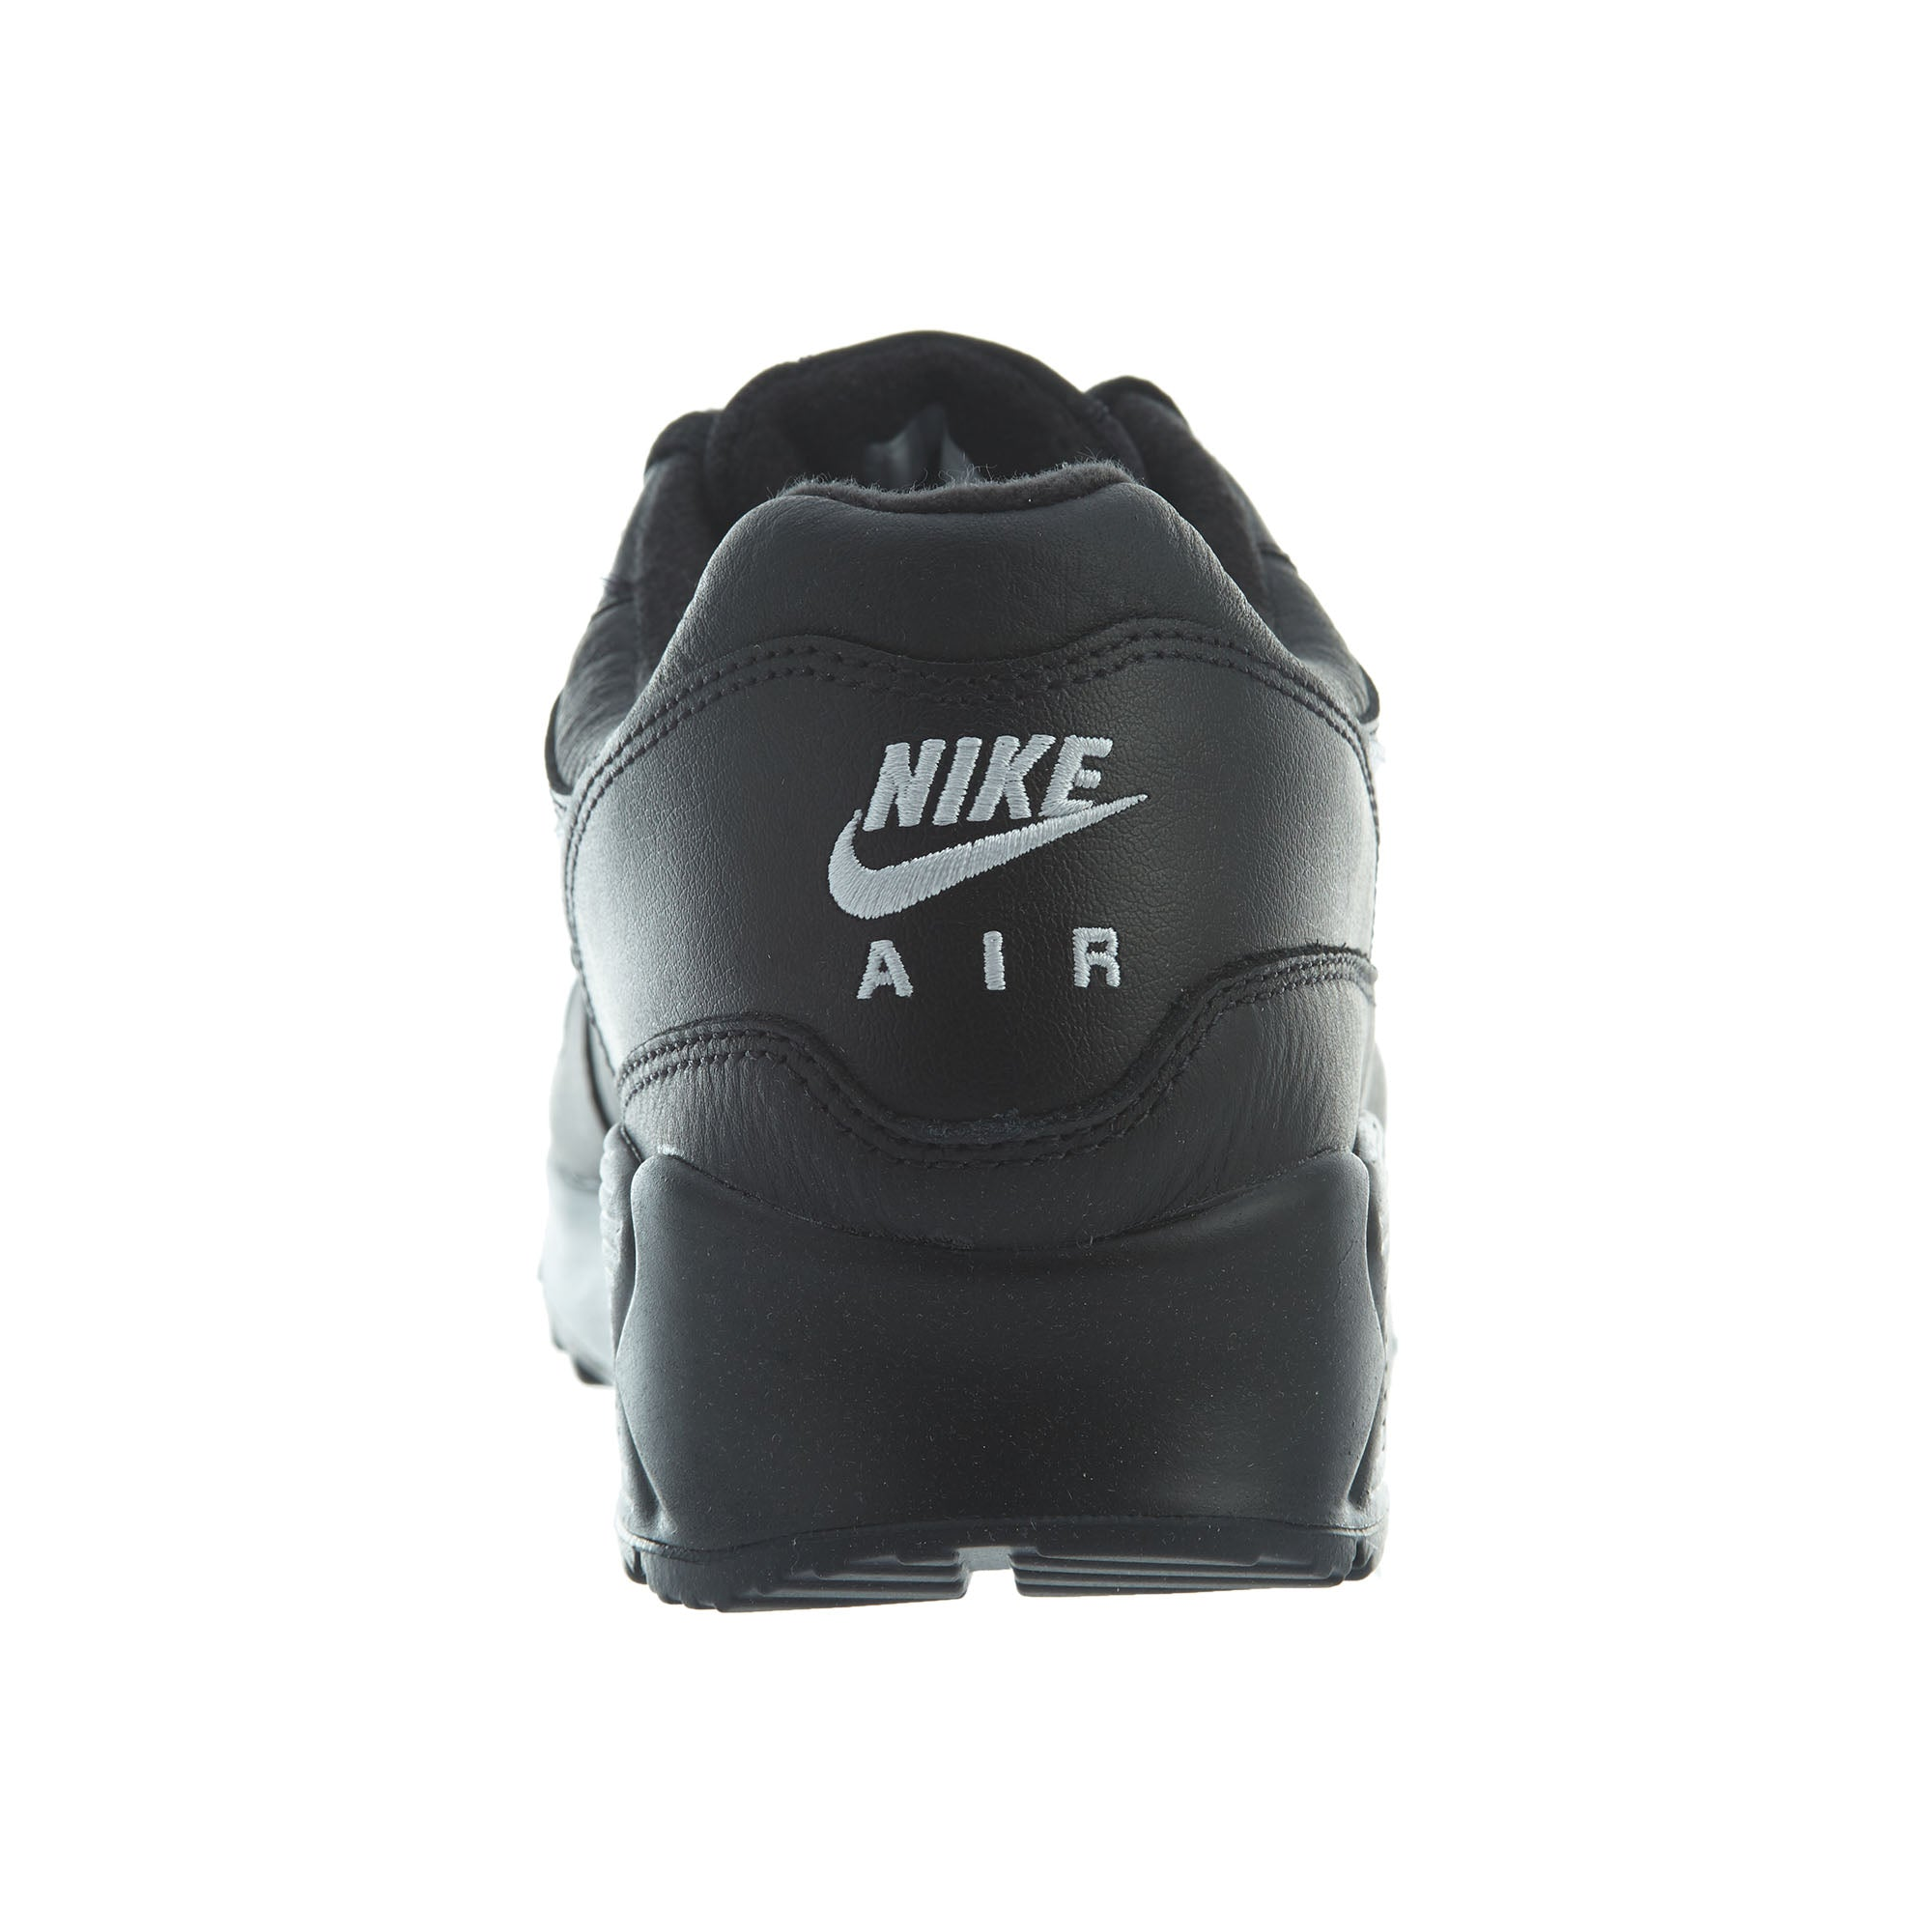 meet ffe97 4fcf2 Nike Air Max 90 1 Black White Leather Running Mens Style  AJ7695. NIKE   Athletic  Shoes   Sneakers